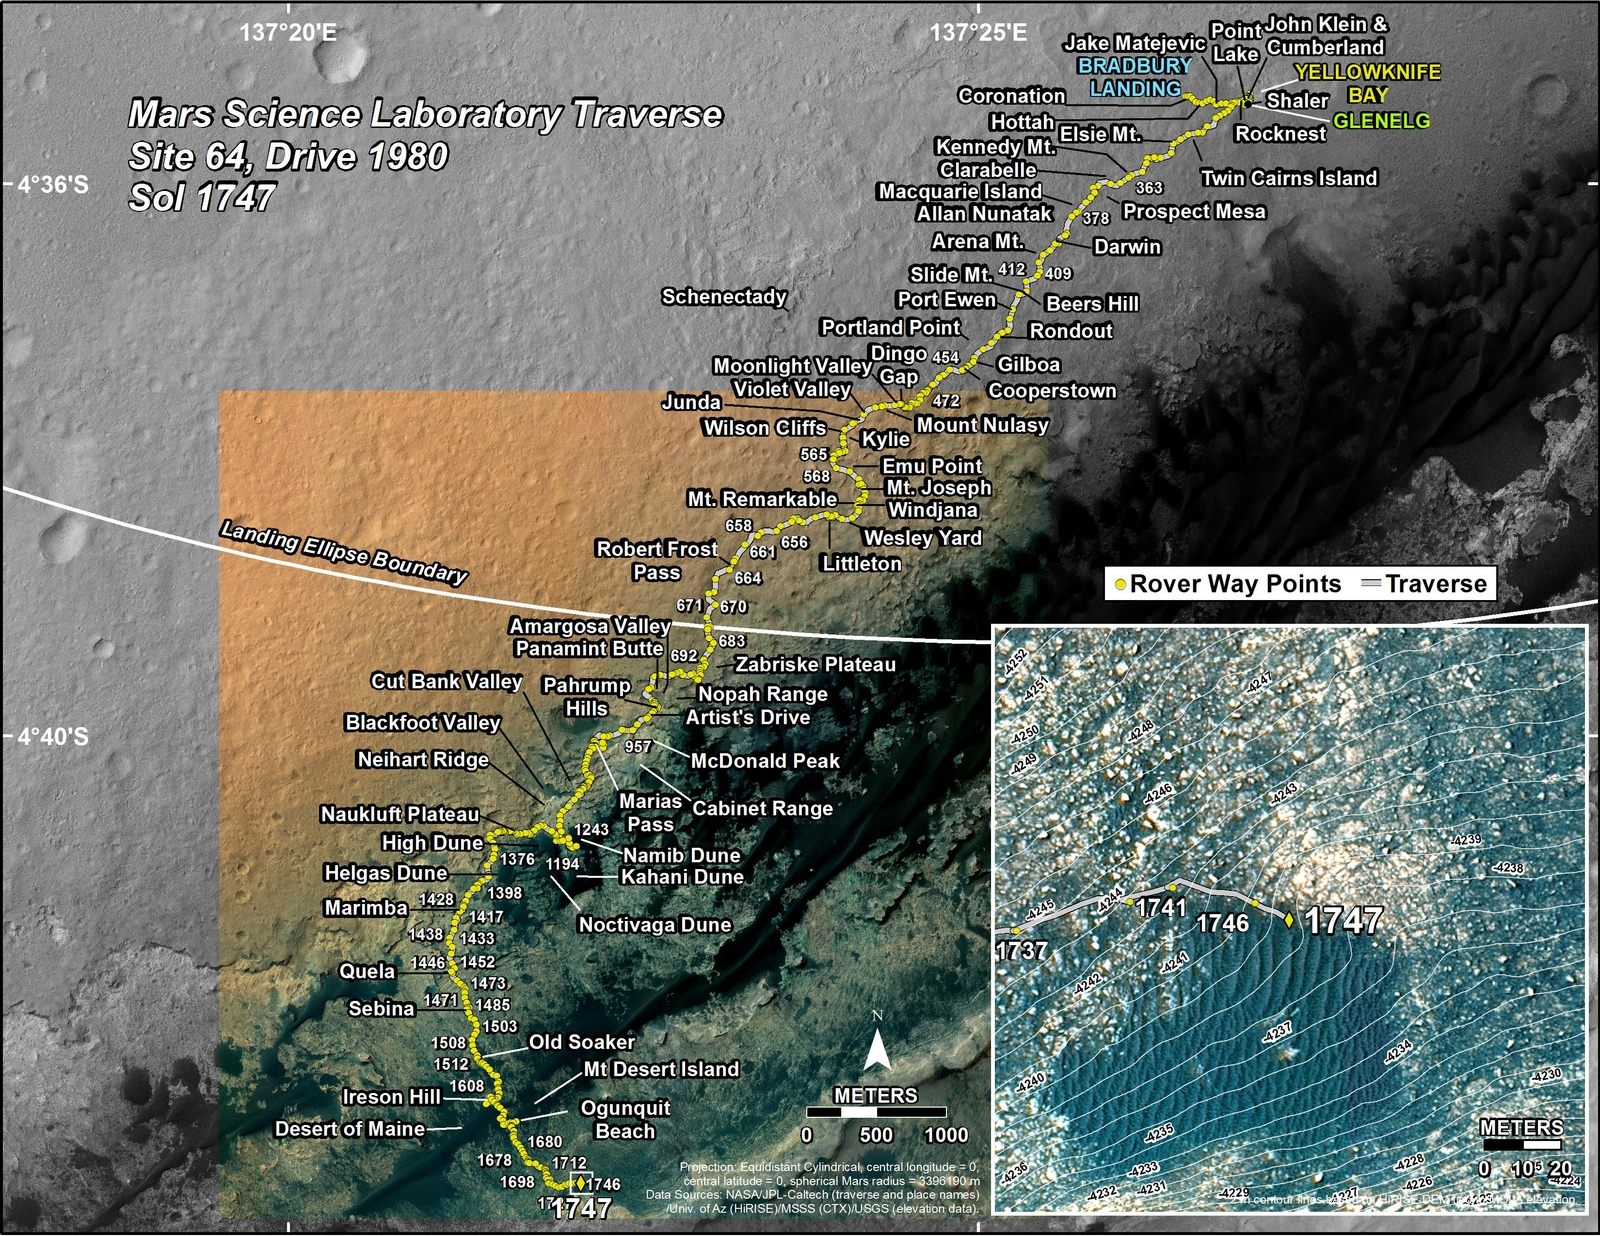 This map shows the route driven by NASA's Mars rover Curiosity through the 1747 Martian day, or sol, of the rover's mission on Mars (July 06, 2017).